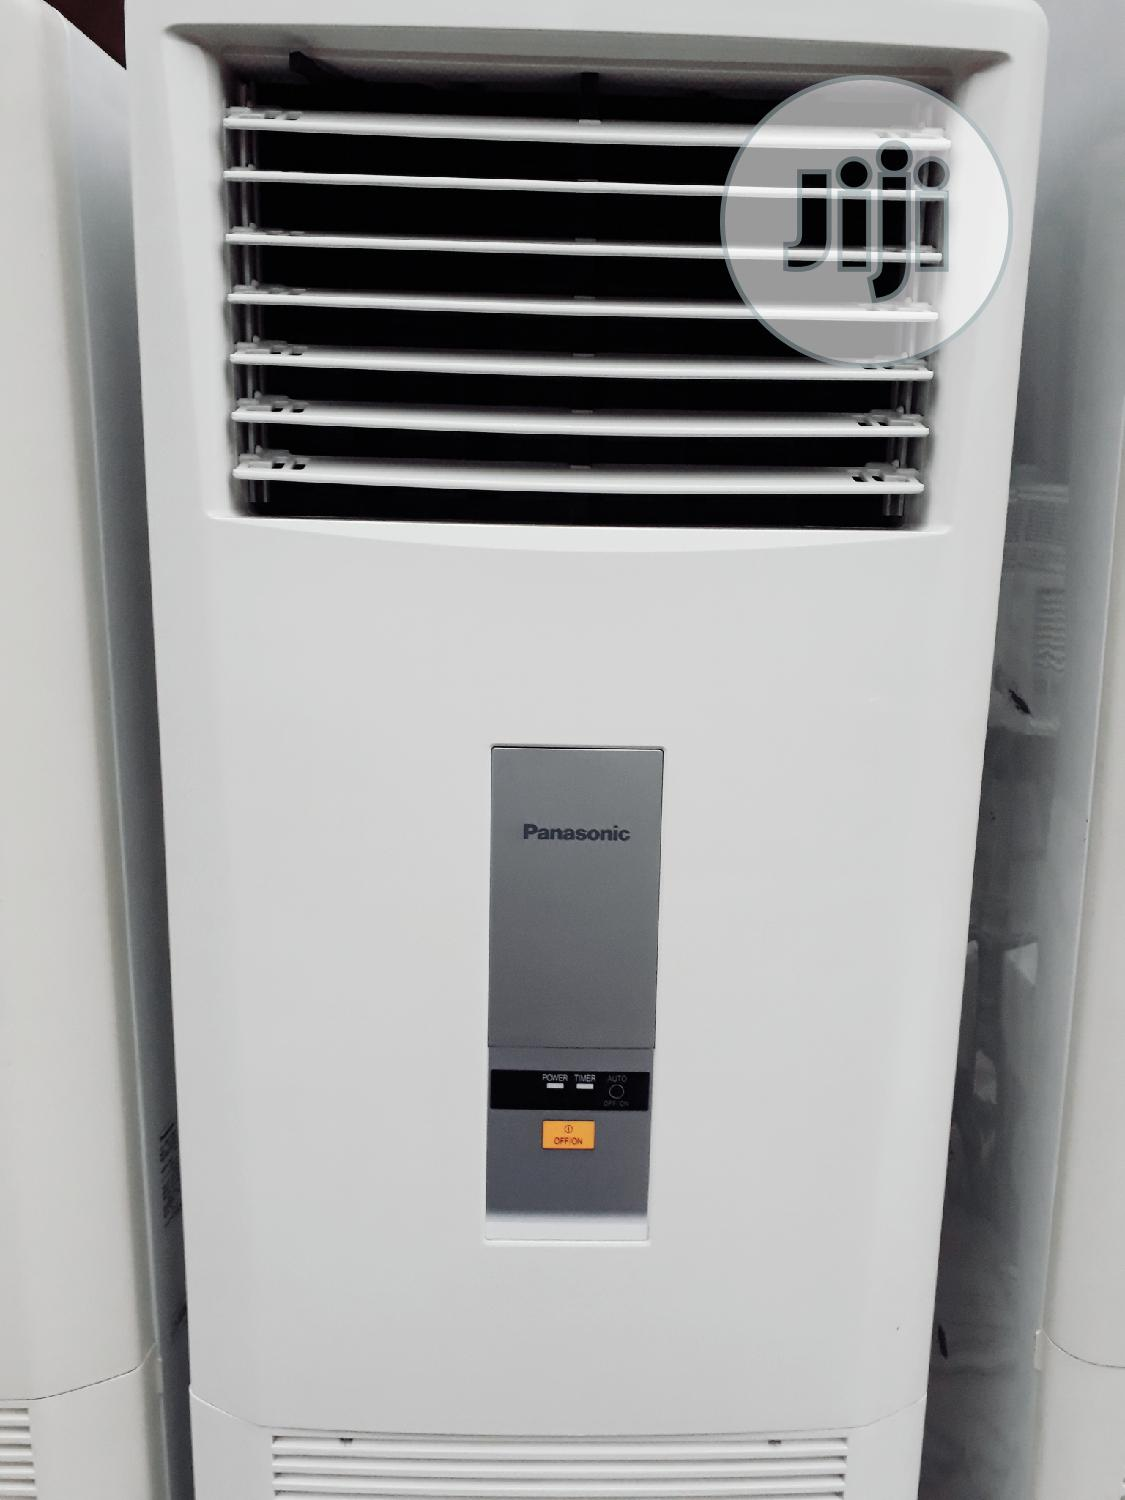 Panasonic 3hp Standing Air Conditioner With 1 Year Warranty | Home Appliances for sale in Lagos Island (Eko), Lagos State, Nigeria